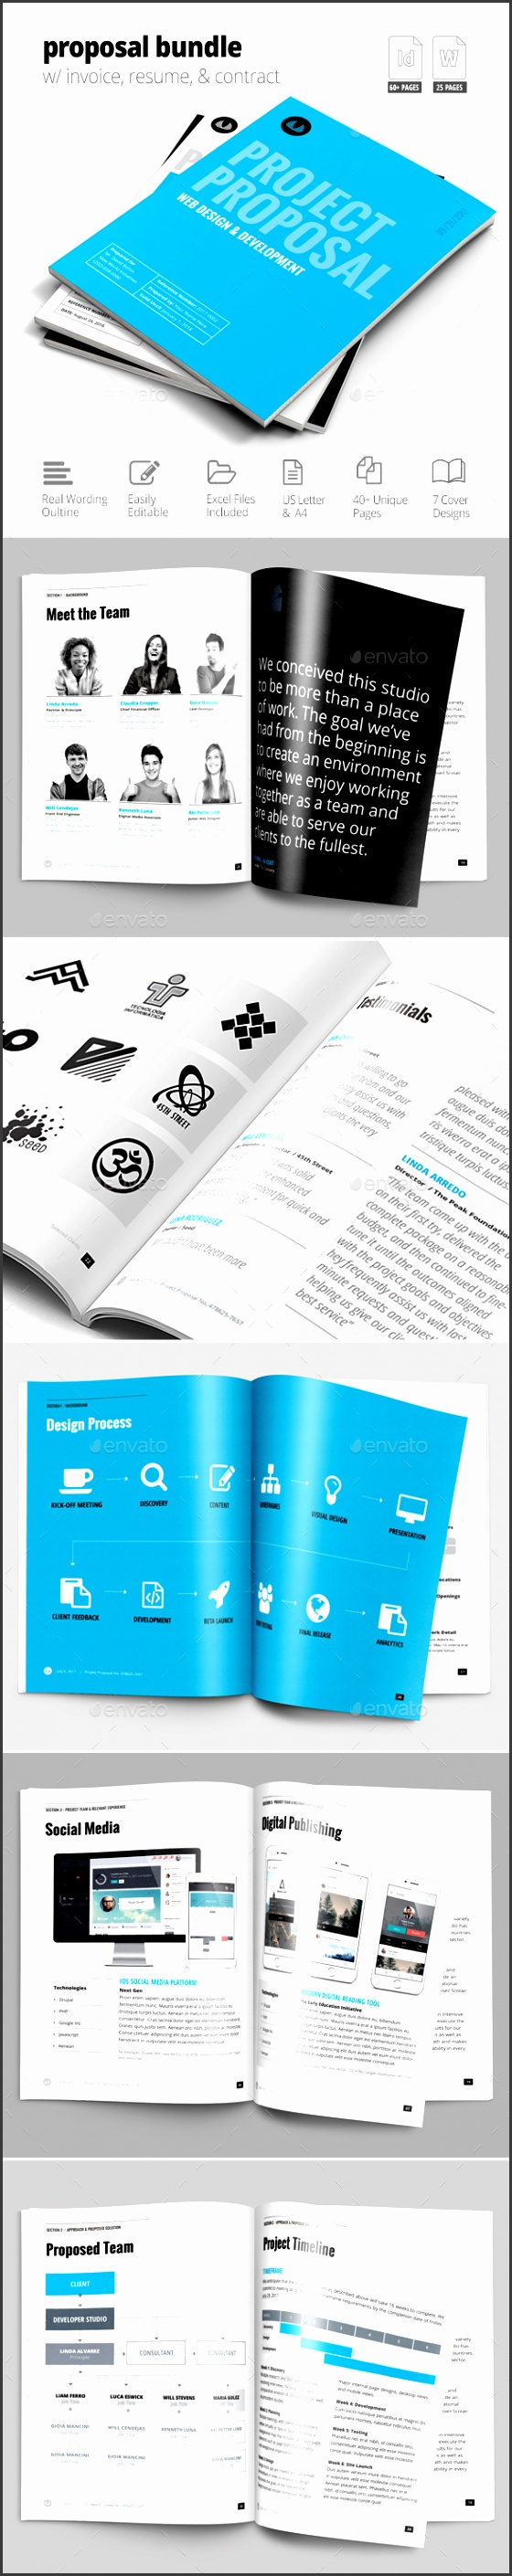 8 pages proposal template